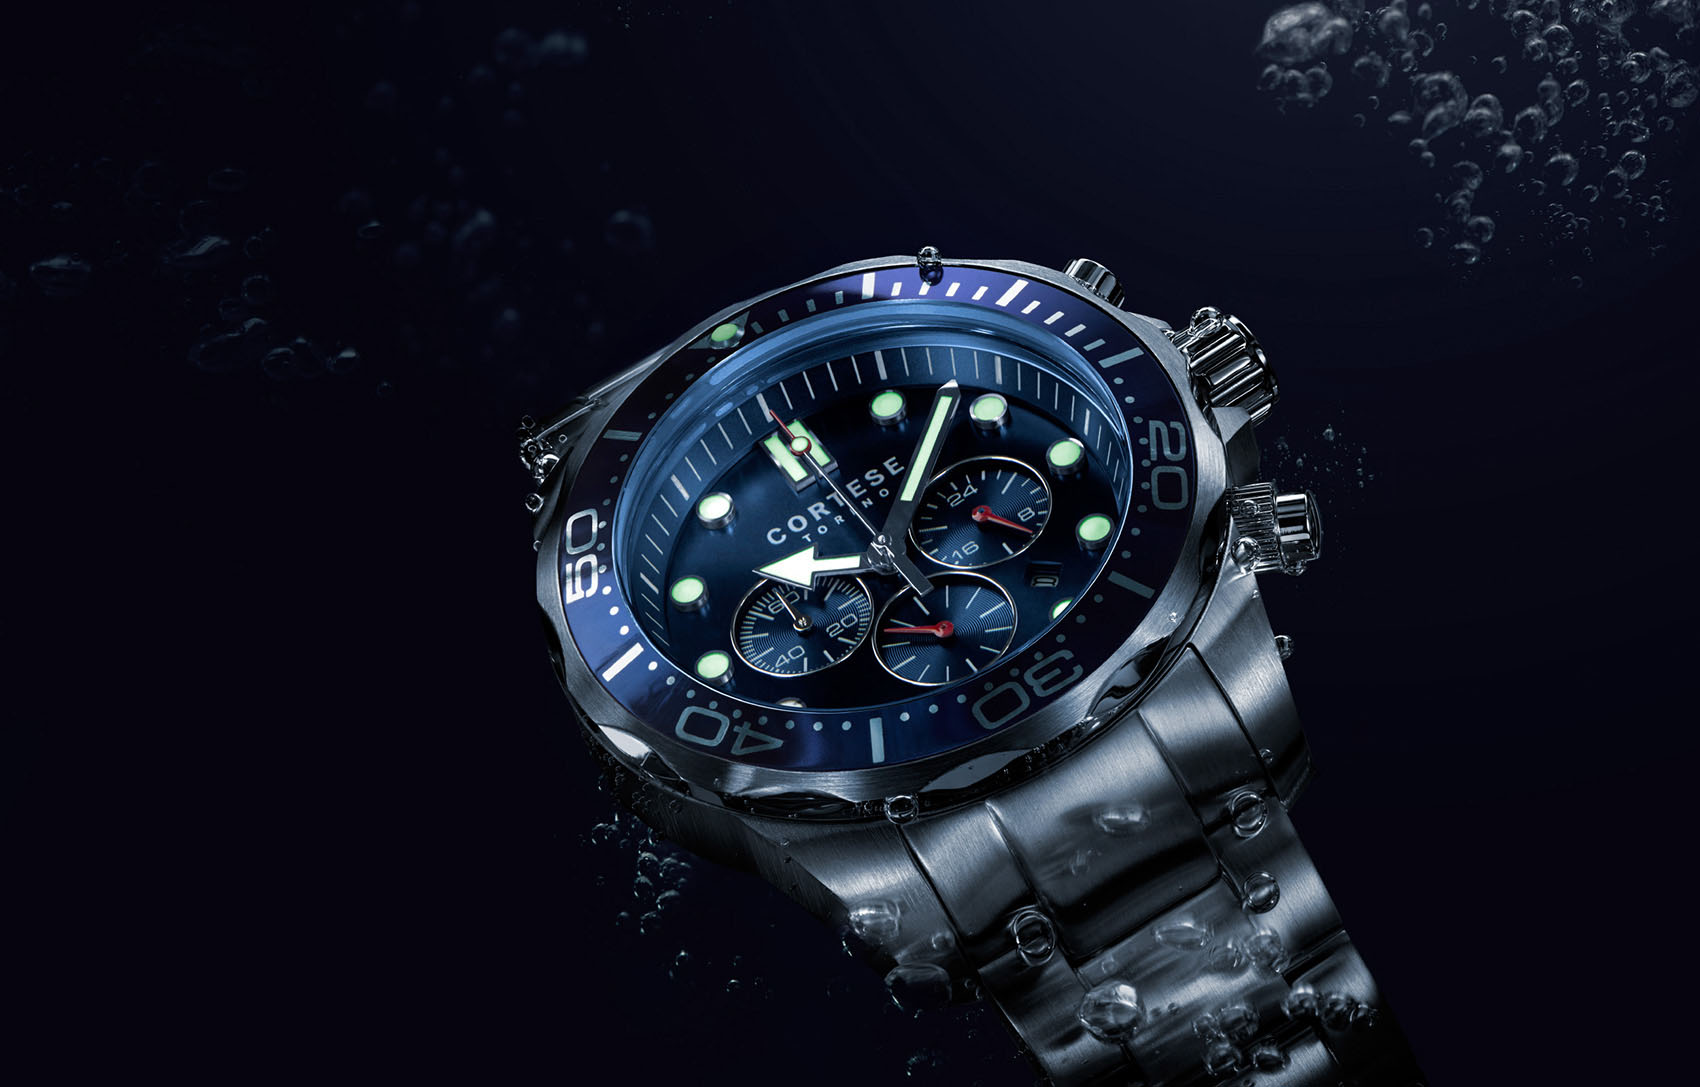 diving watch underwater photography